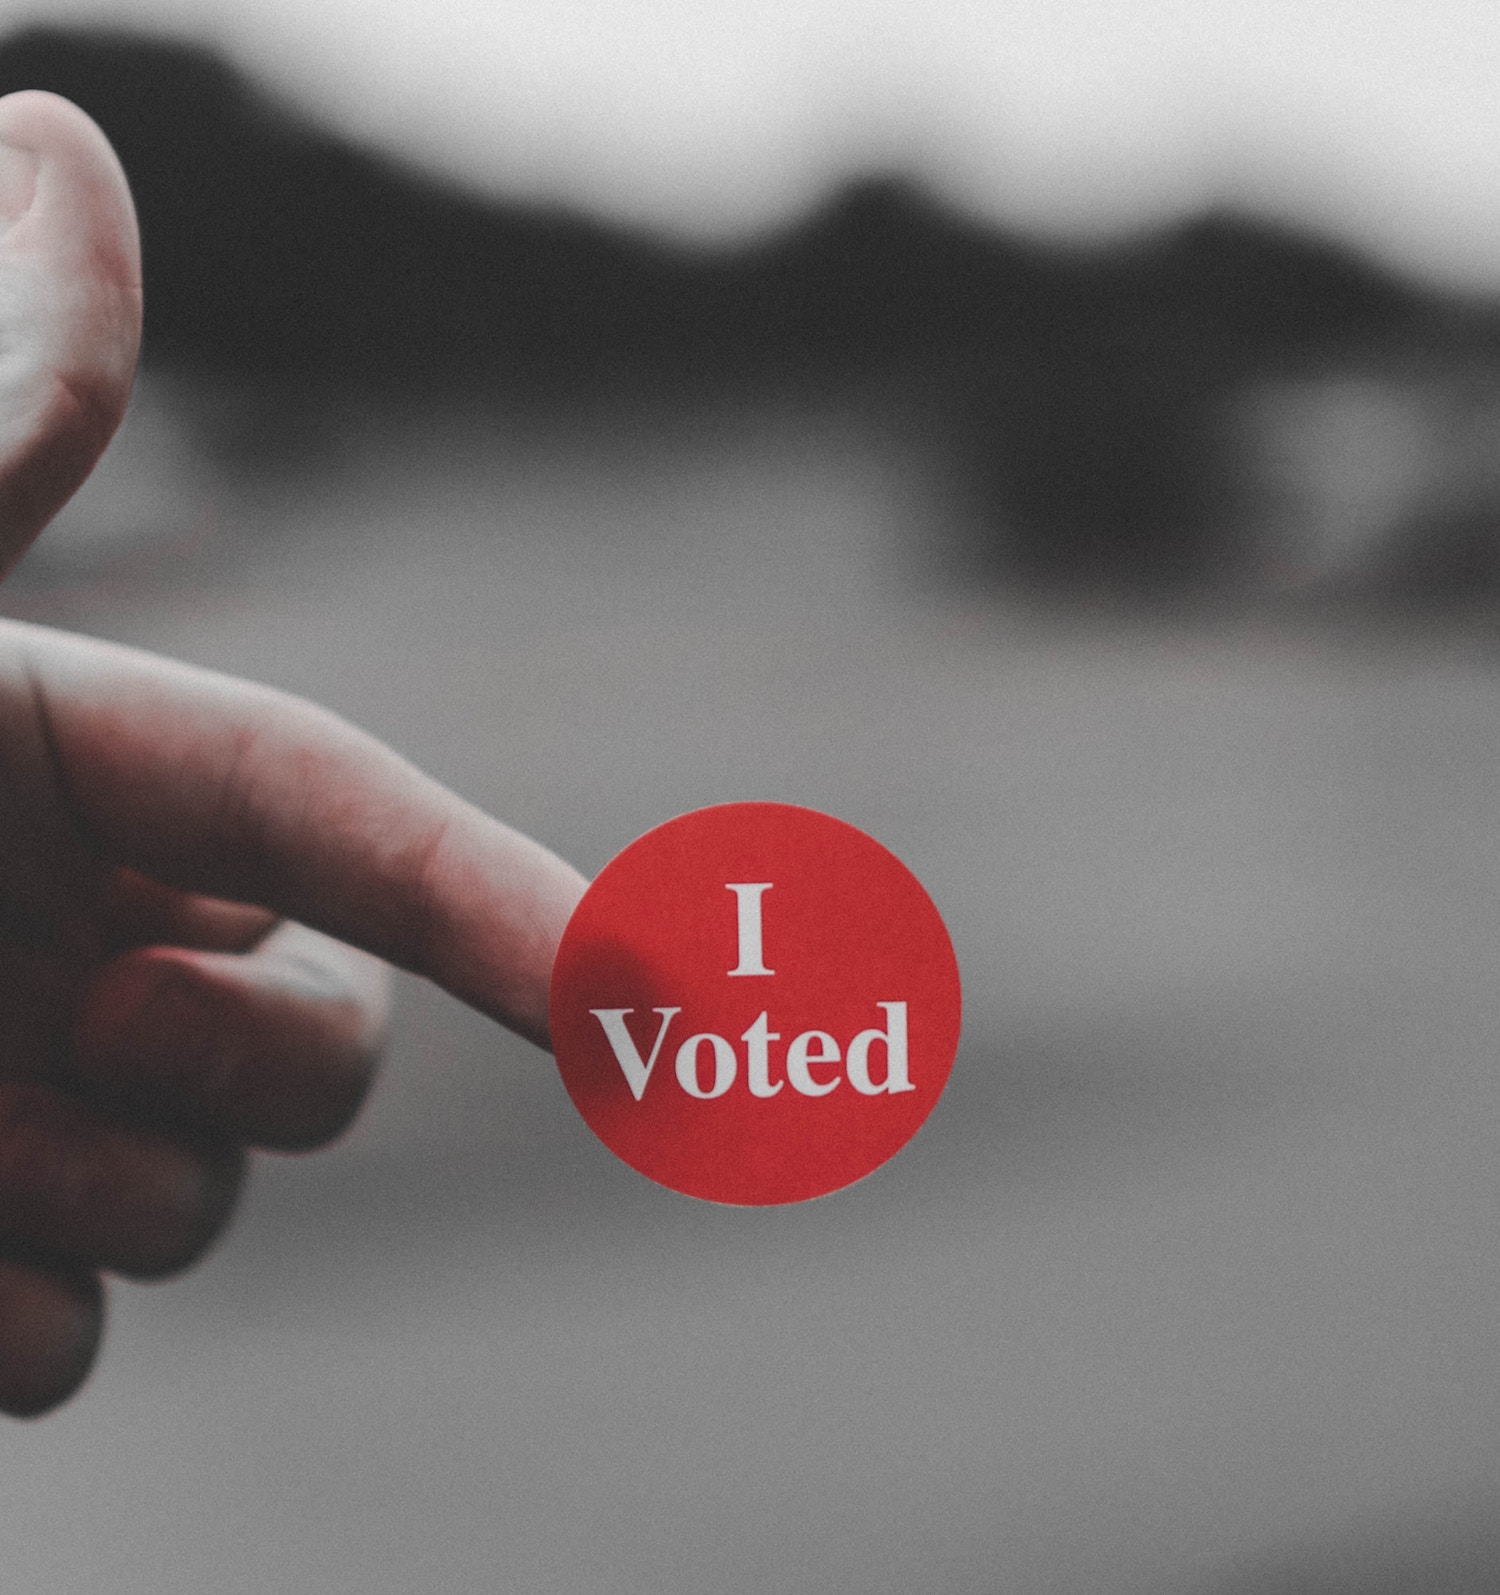 Try Out Ranked Choice Voting